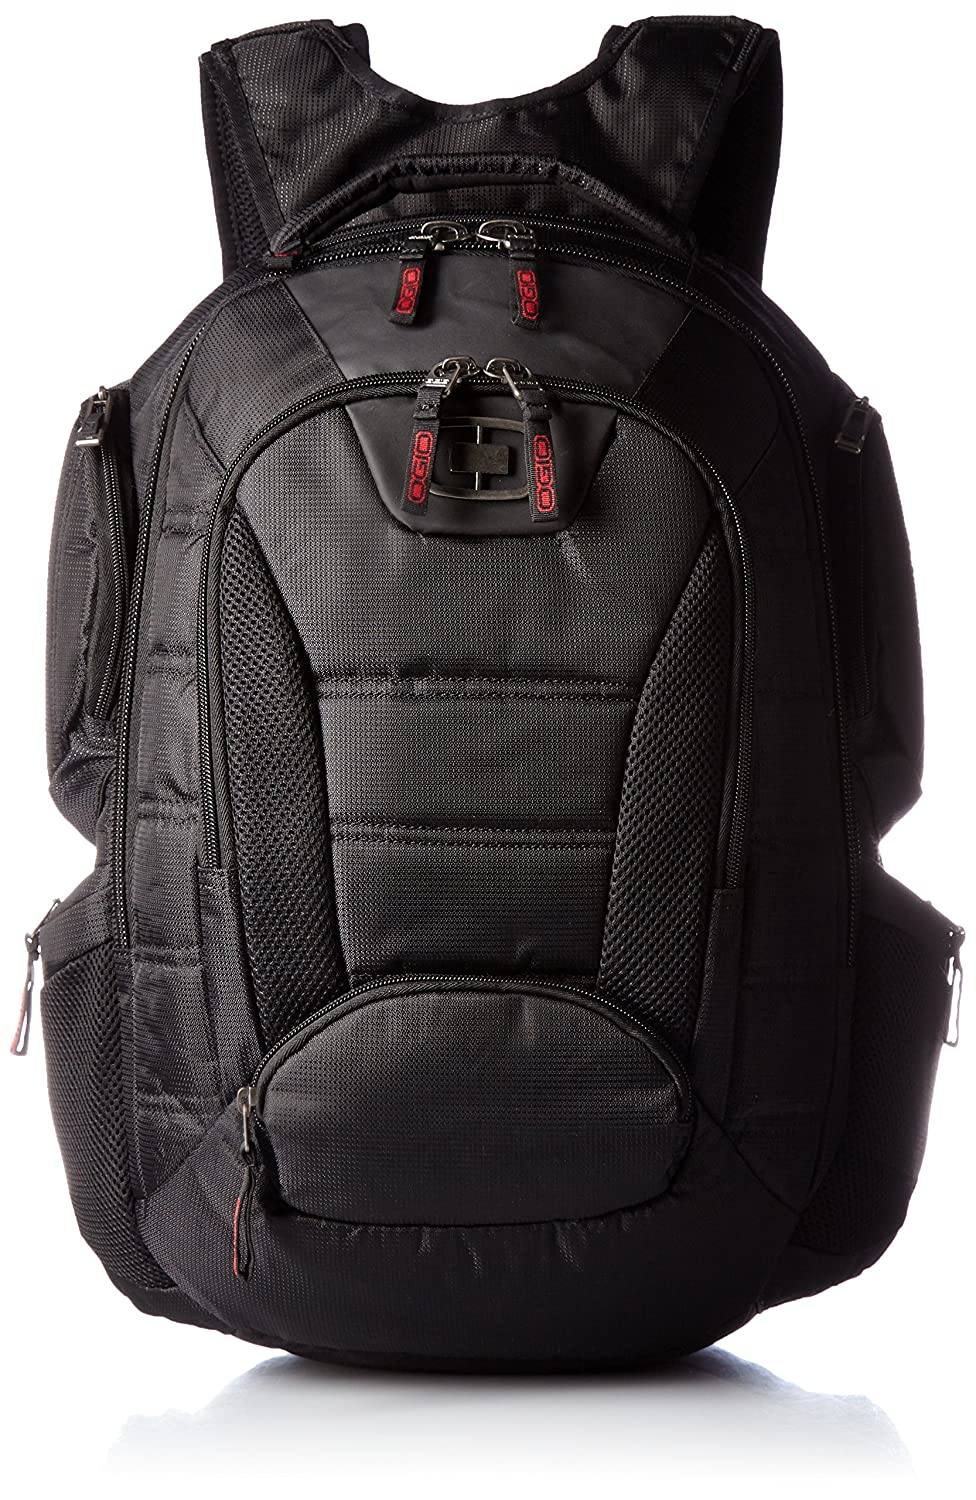 Amazon.com: OGIO Bandit 17 Day Pack, Large, Black: Sports & Outdoors